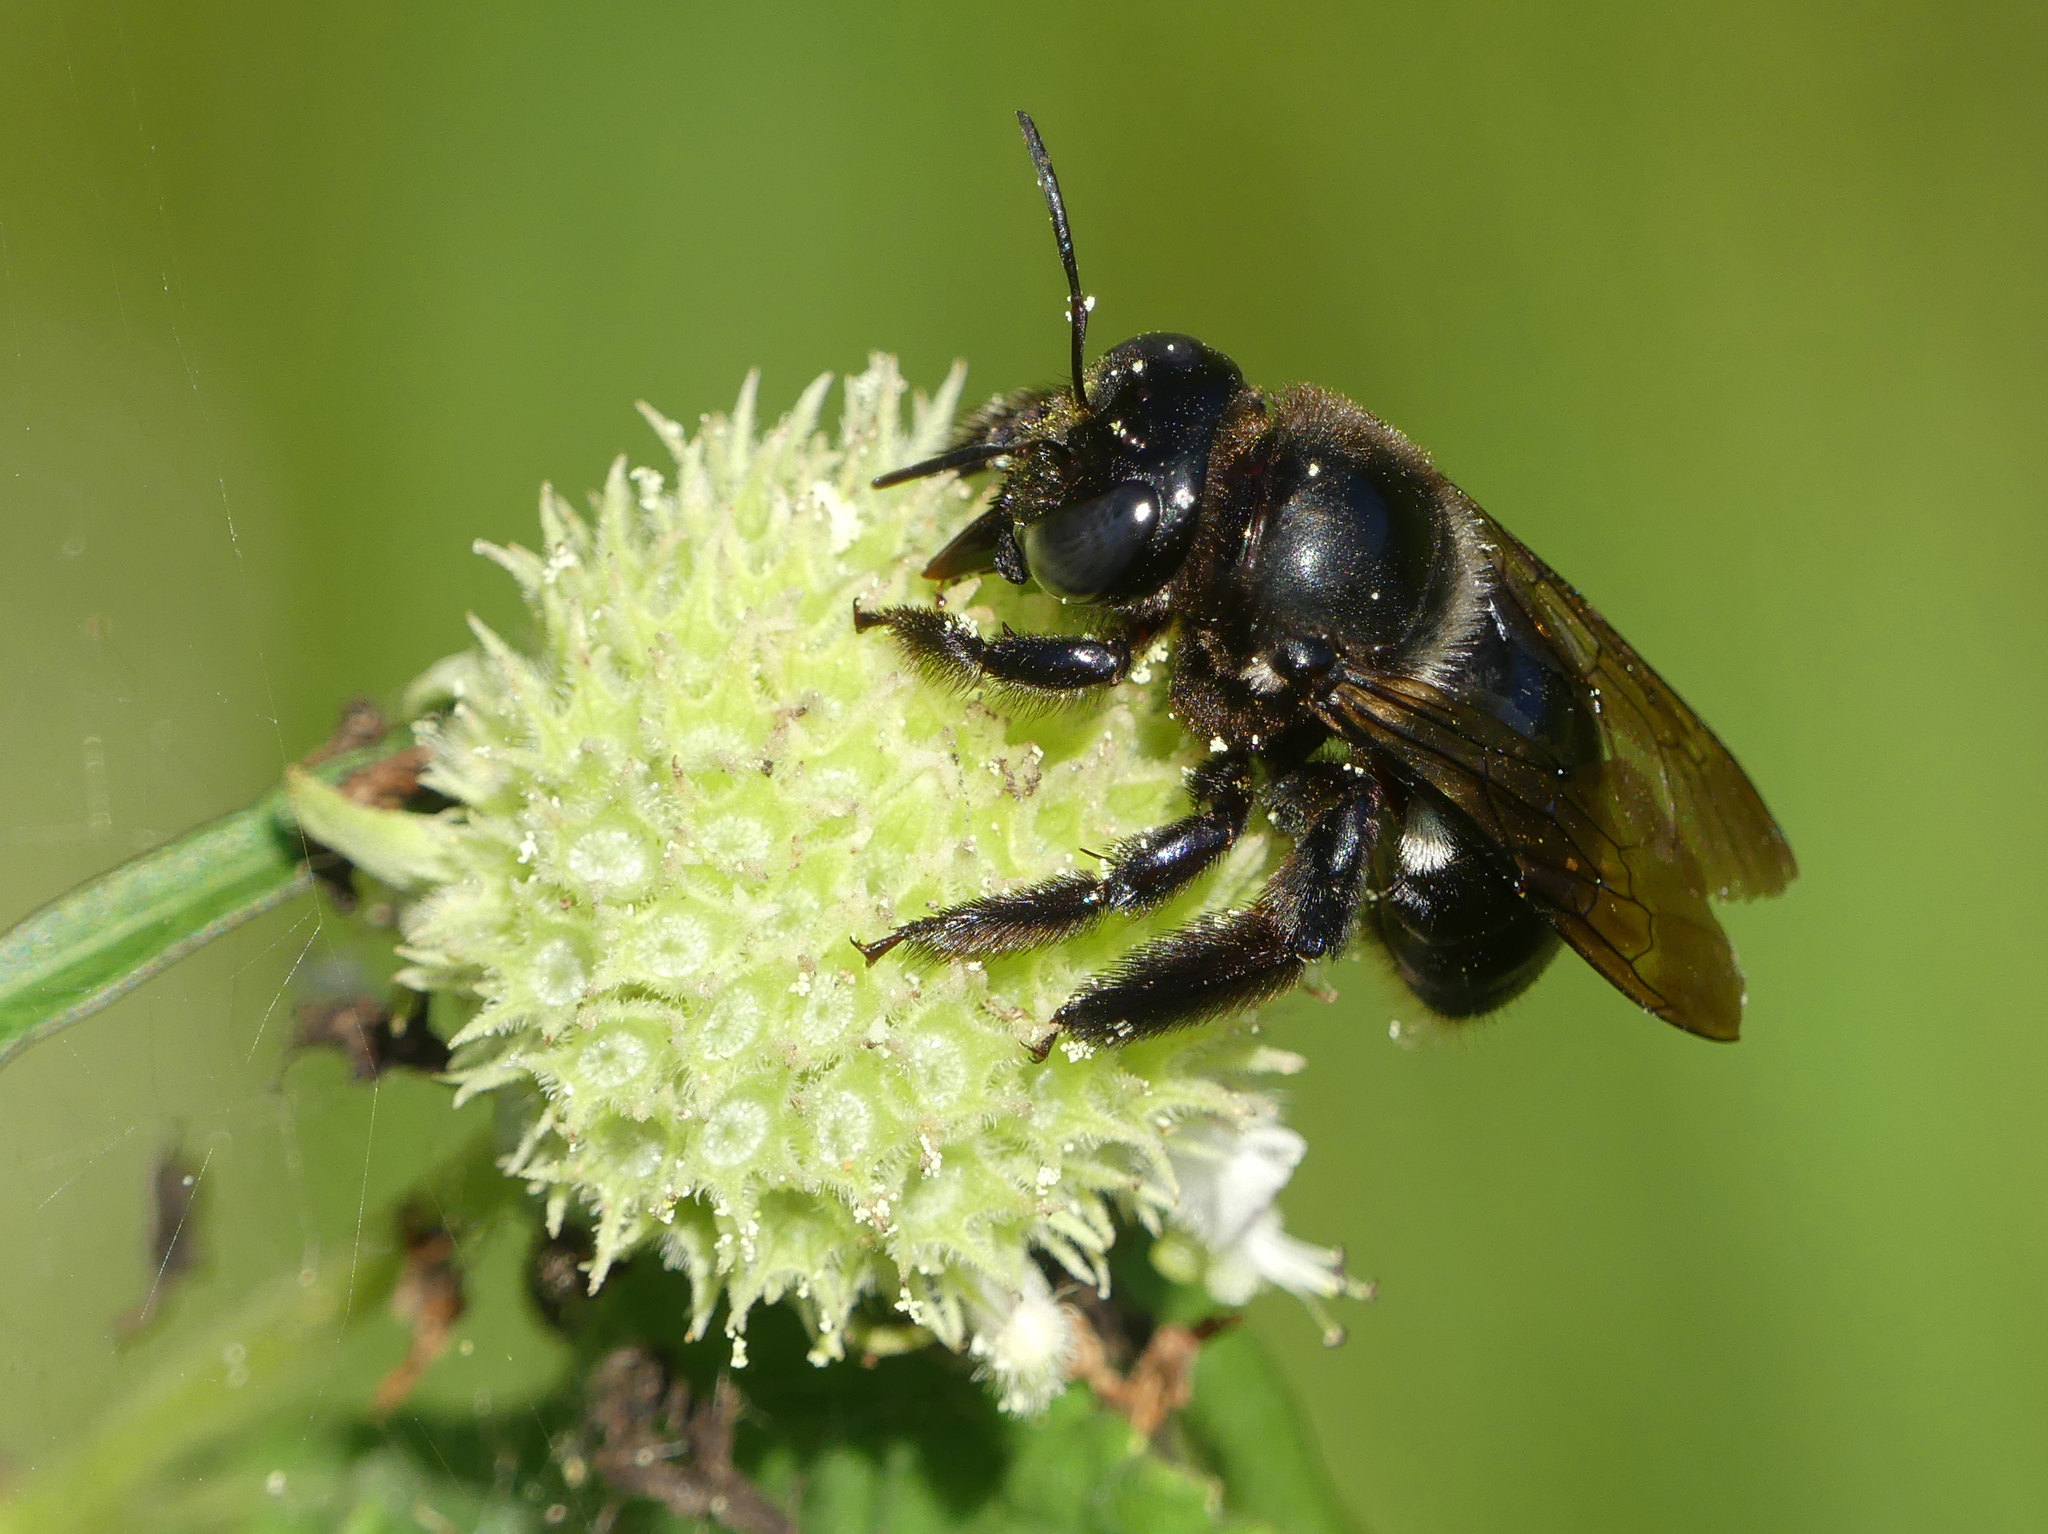 Southern Carpenter Bee (Xylocopa micans)